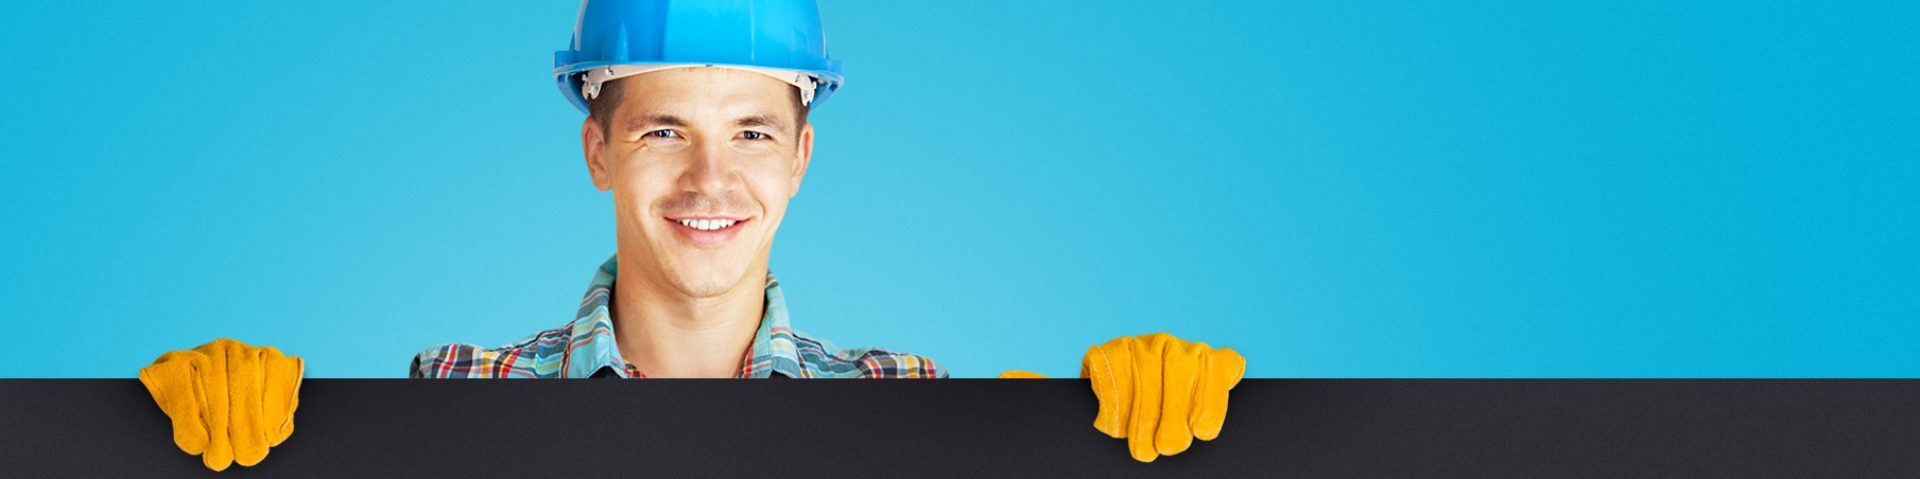 How to Find Local Contractors Near You